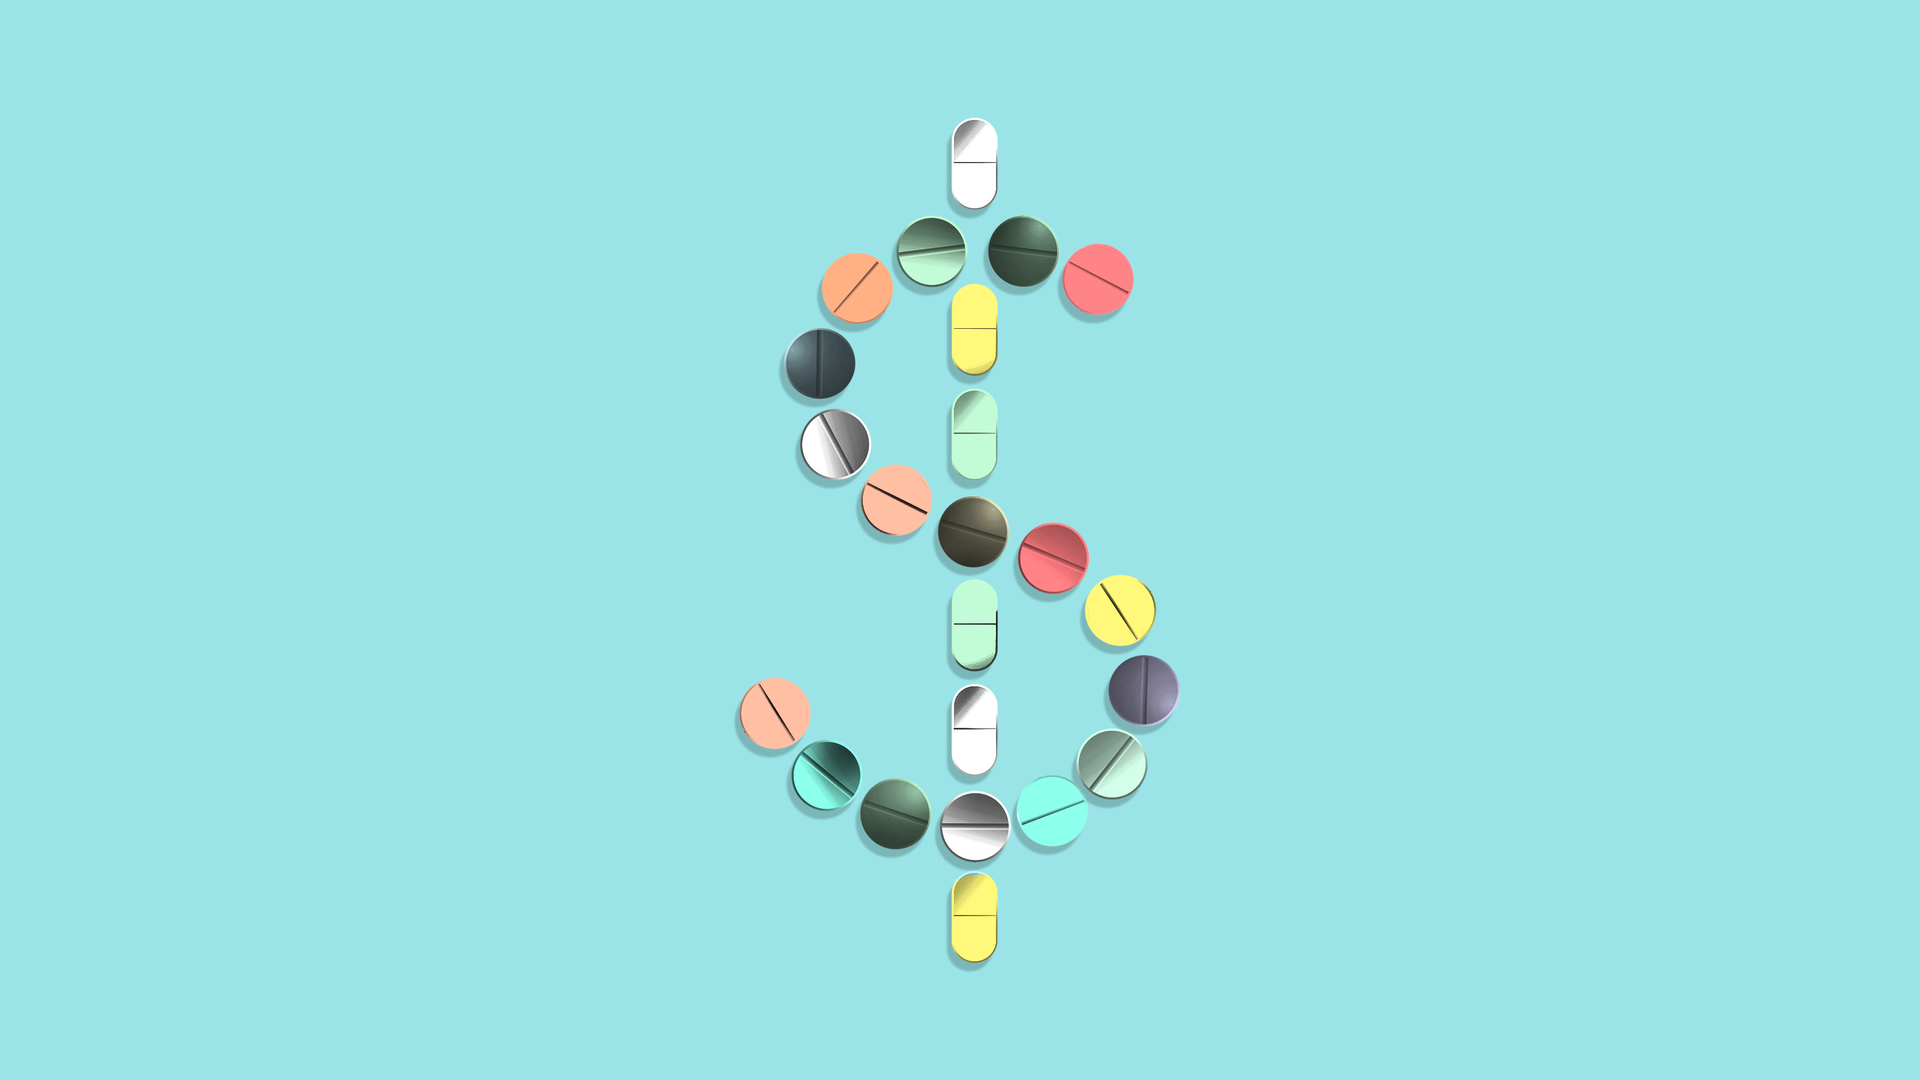 Dollar sign made up of pills